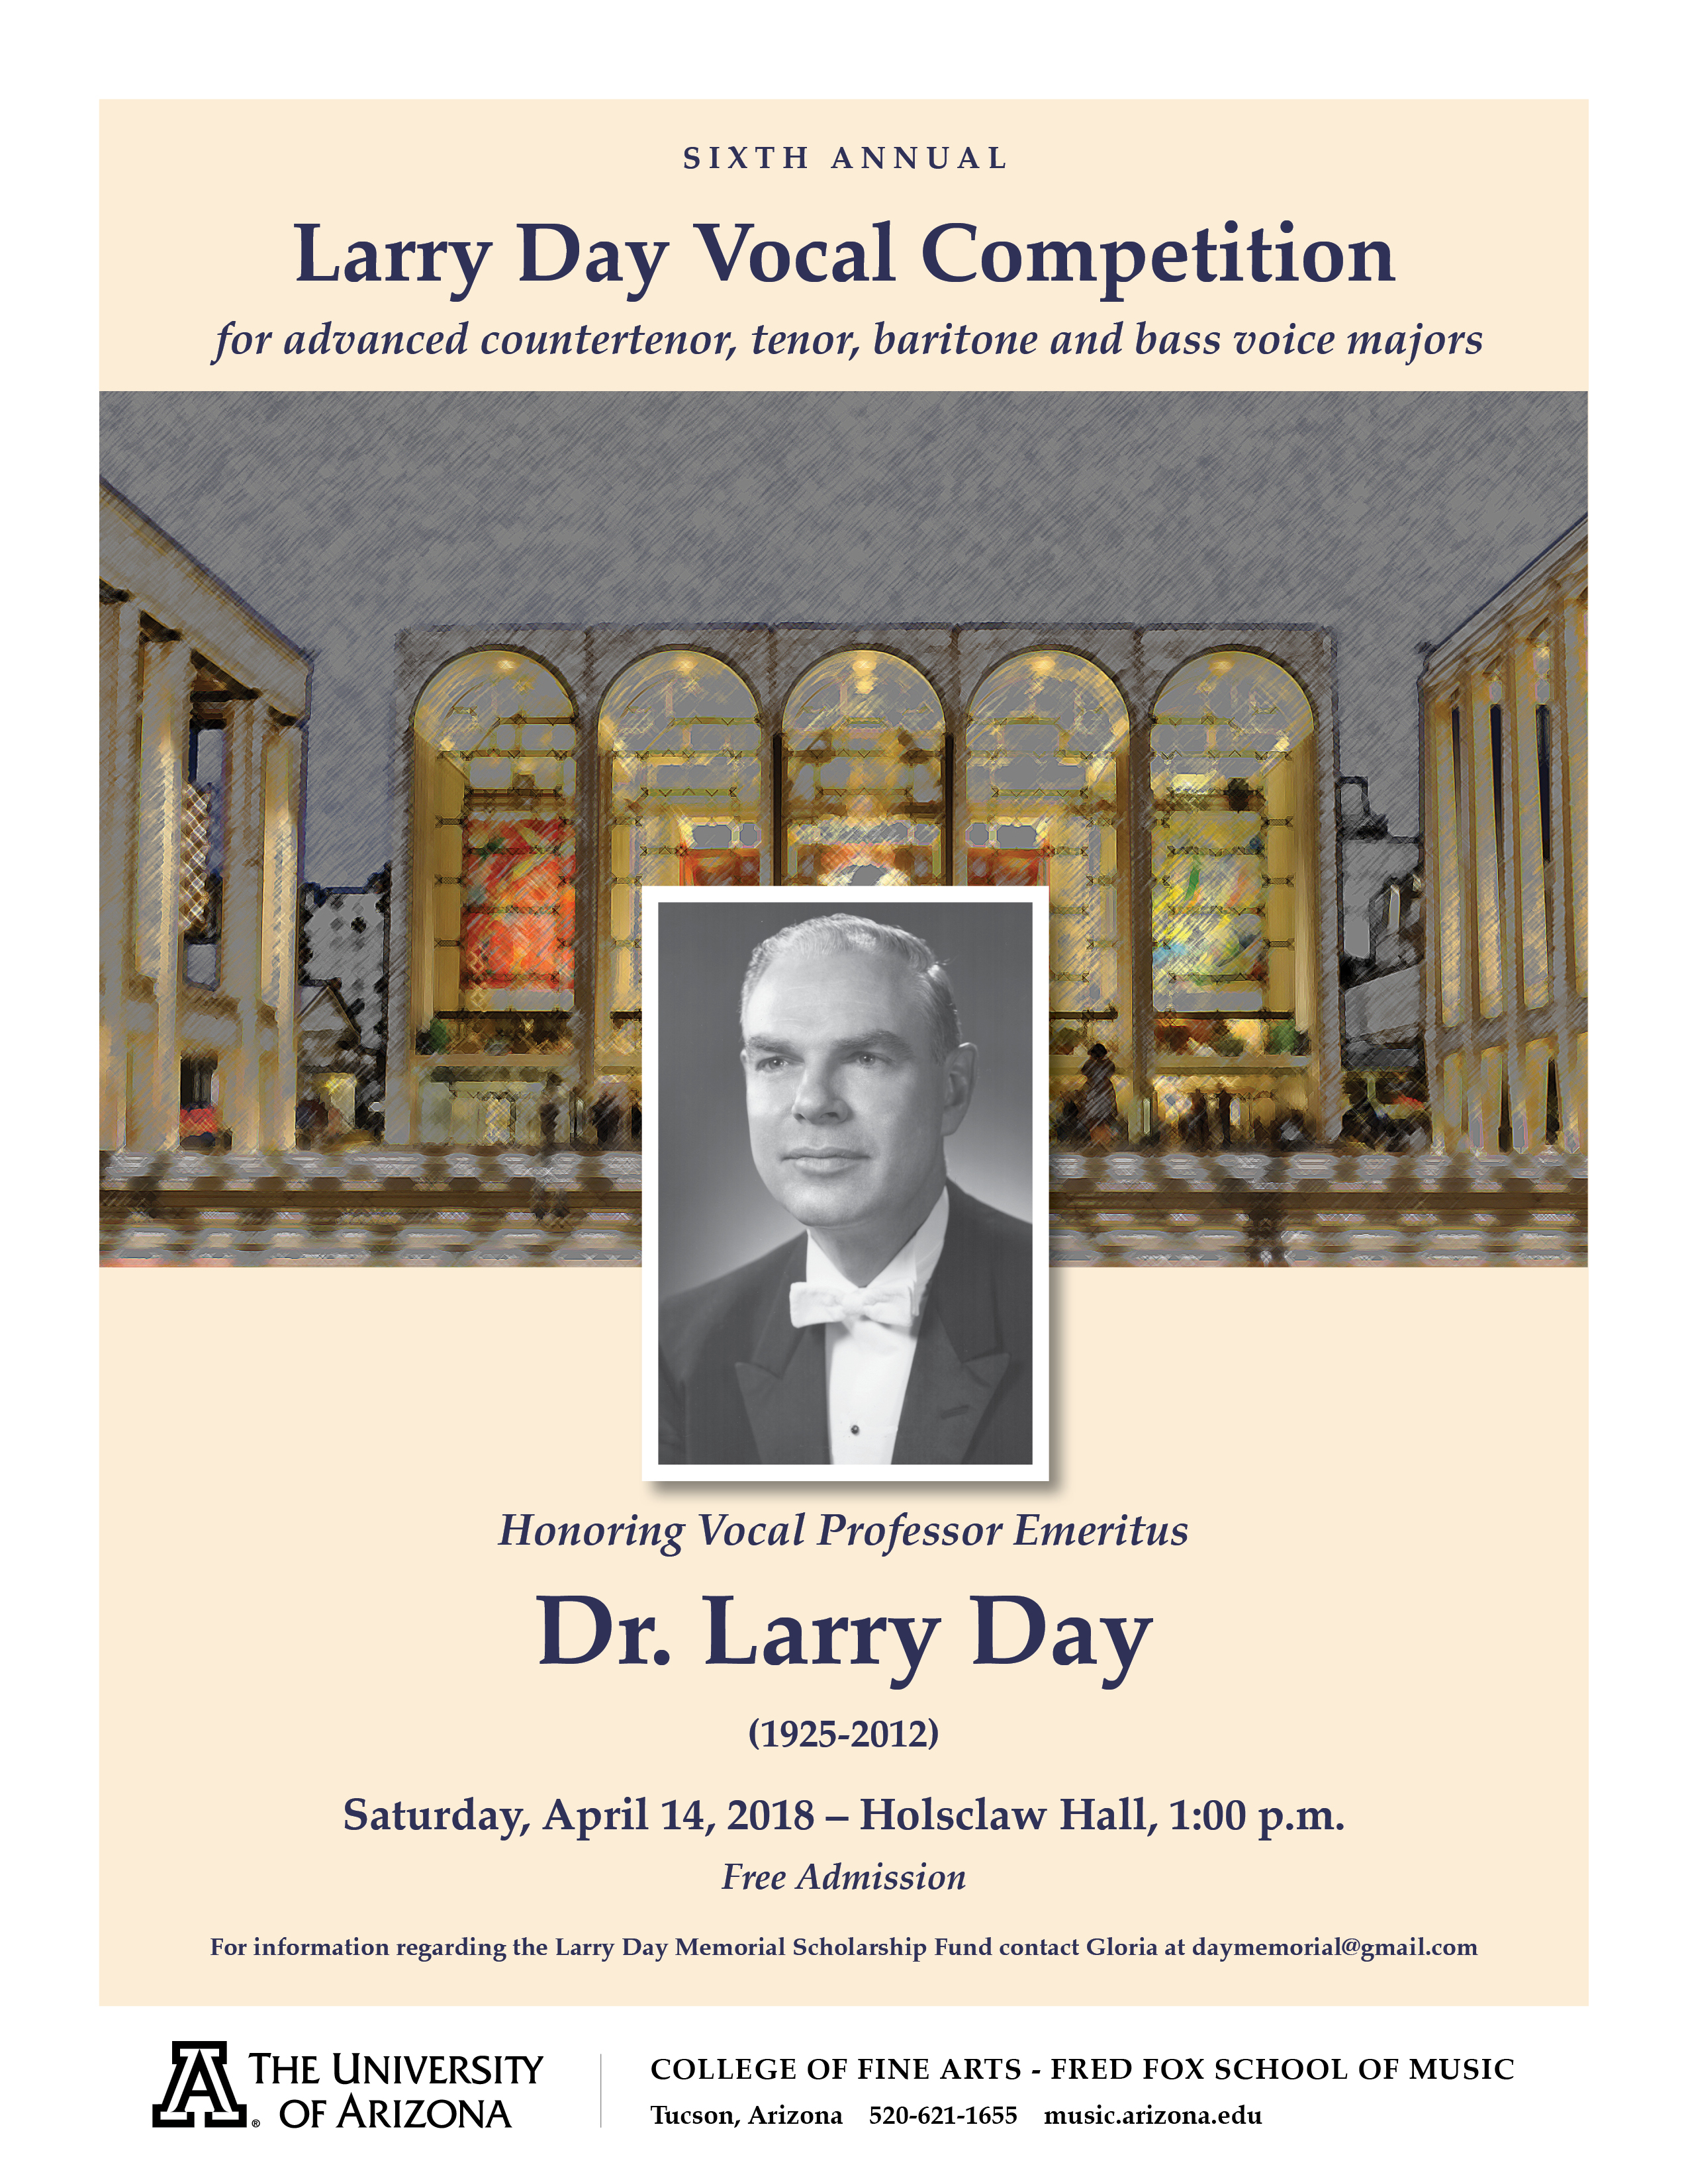 SIXTH ANNUAL LARRY DAY VOCAL COMPETITION – Fred Fox School